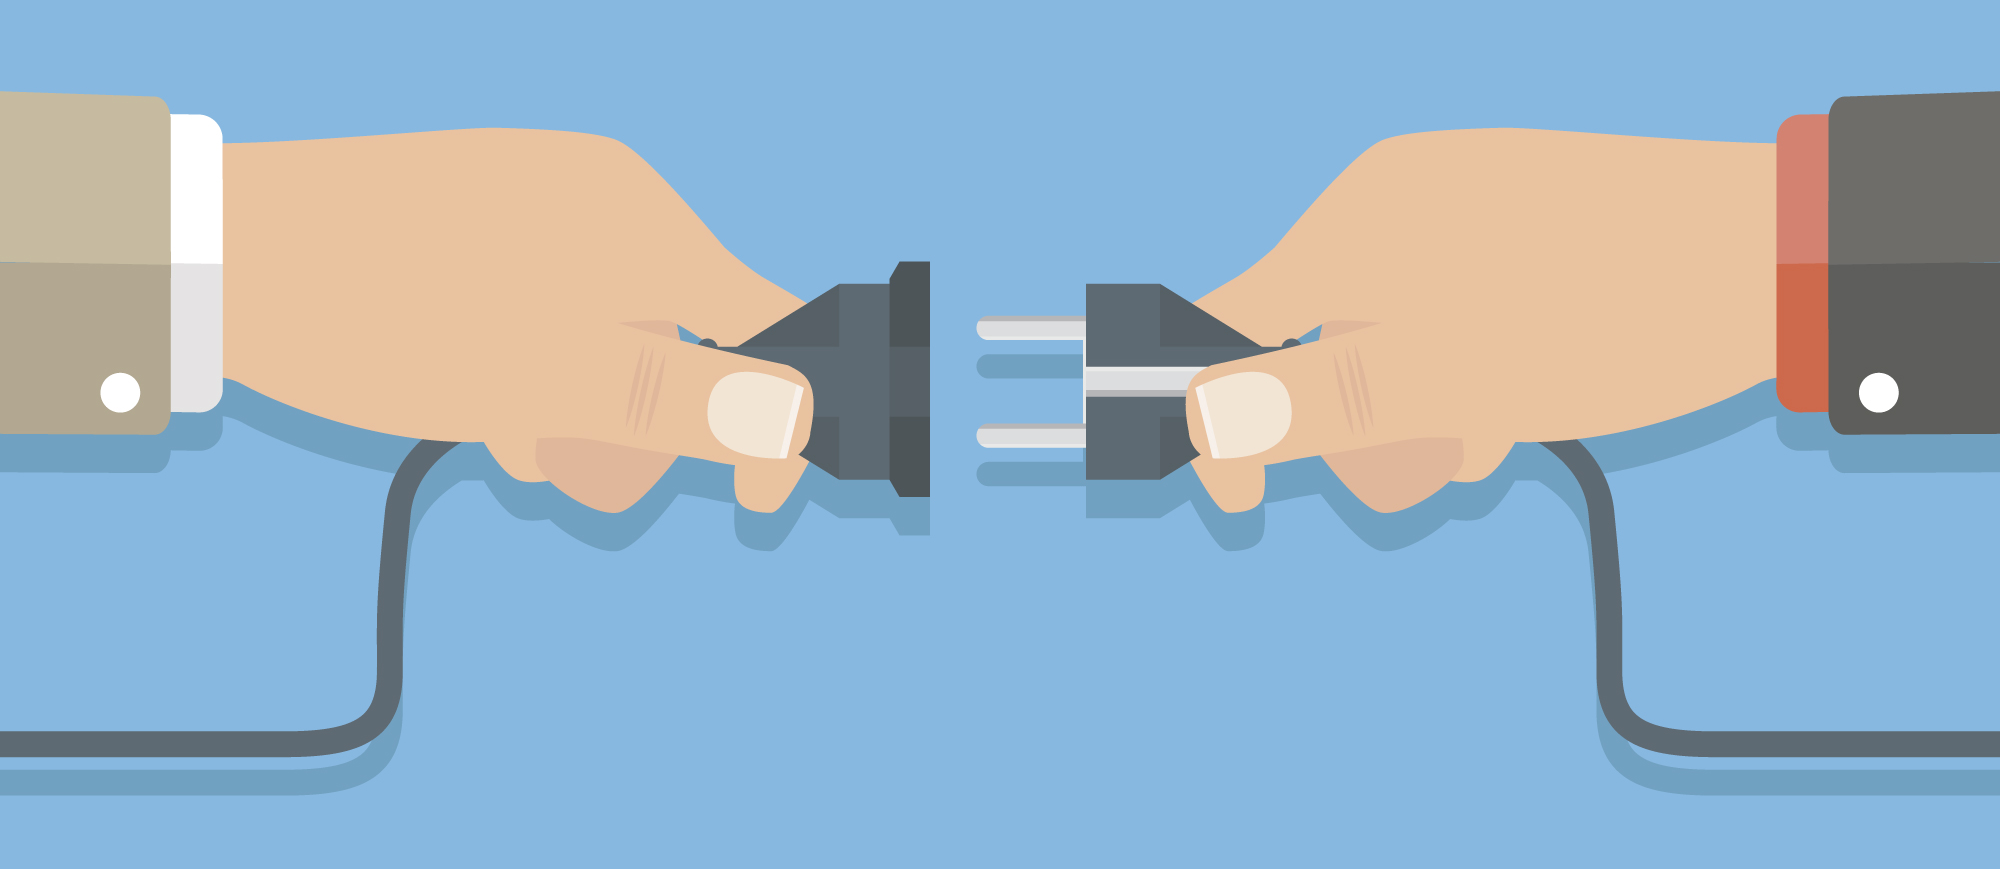 An image of a flat cartoon rendering of two hands plugin a plug into a socket